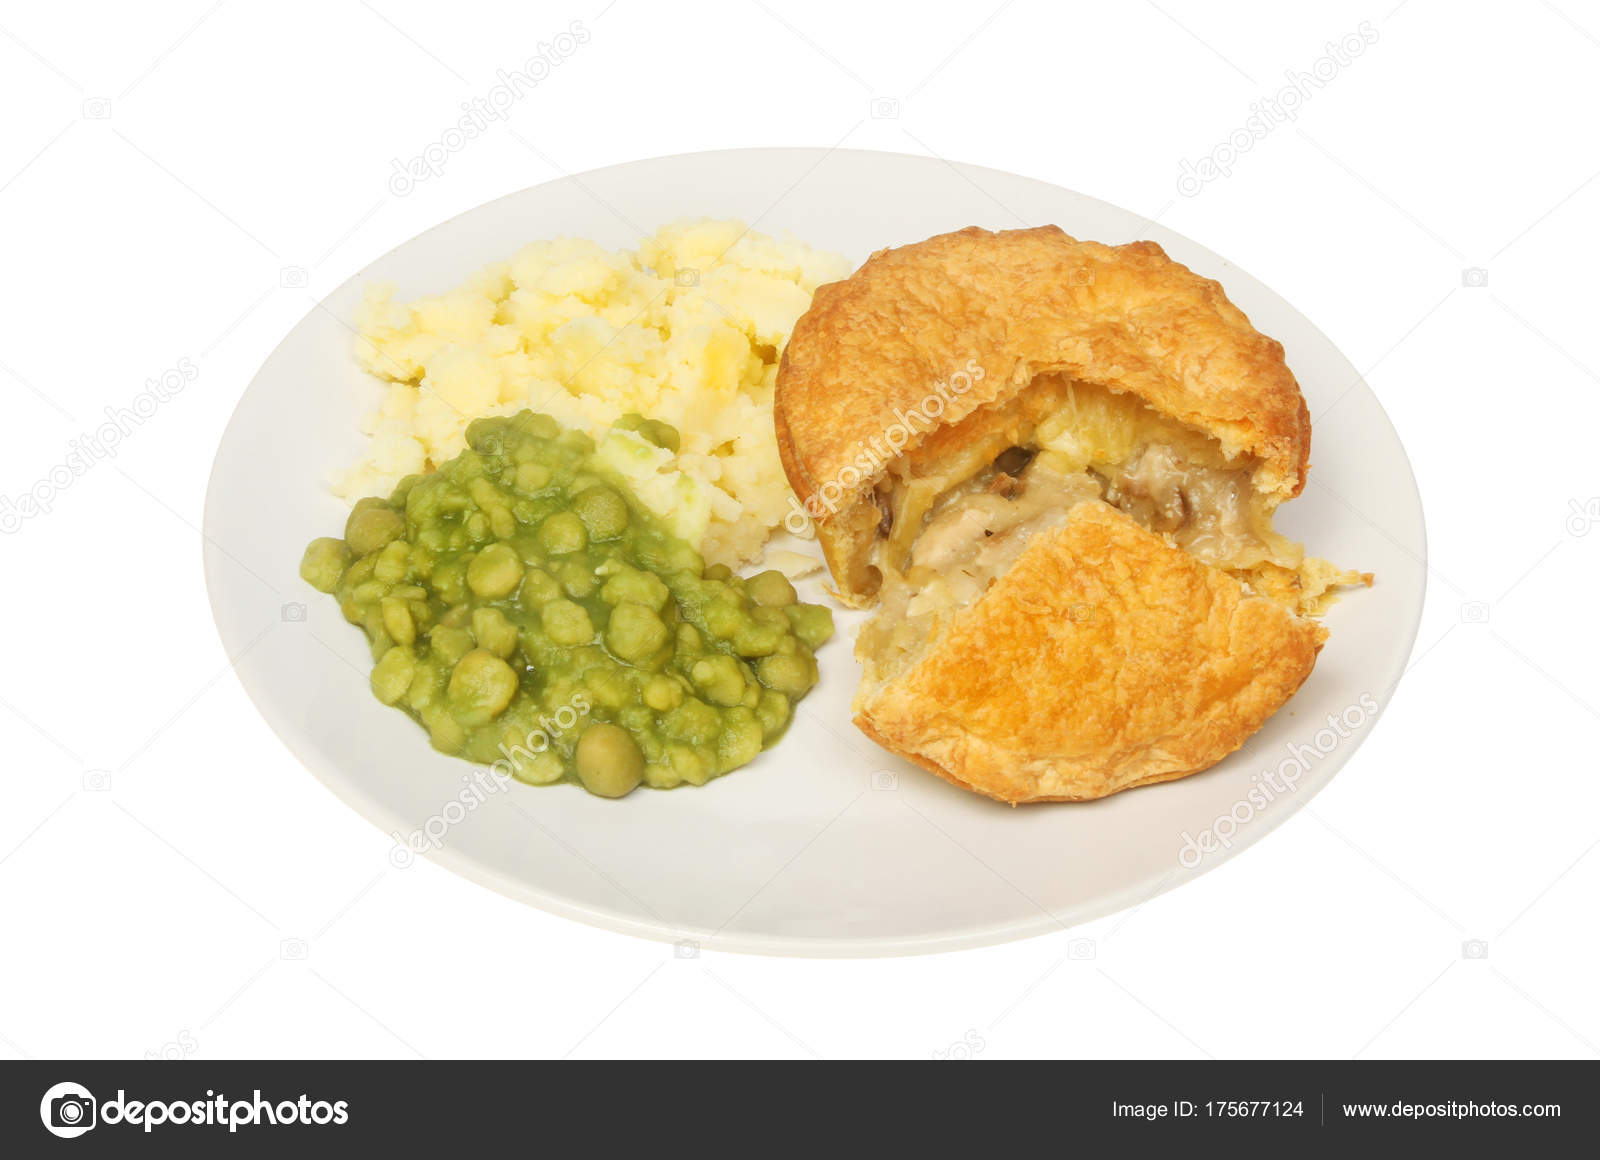 Chicken and mushroom pie with mashed potato and mushy peas on a plate isolated against white \u2014 Photo by griffin024  sc 1 st  Depositphotos & Chicken pie and veg \u2014 Stock Photo © griffin024 #175677124